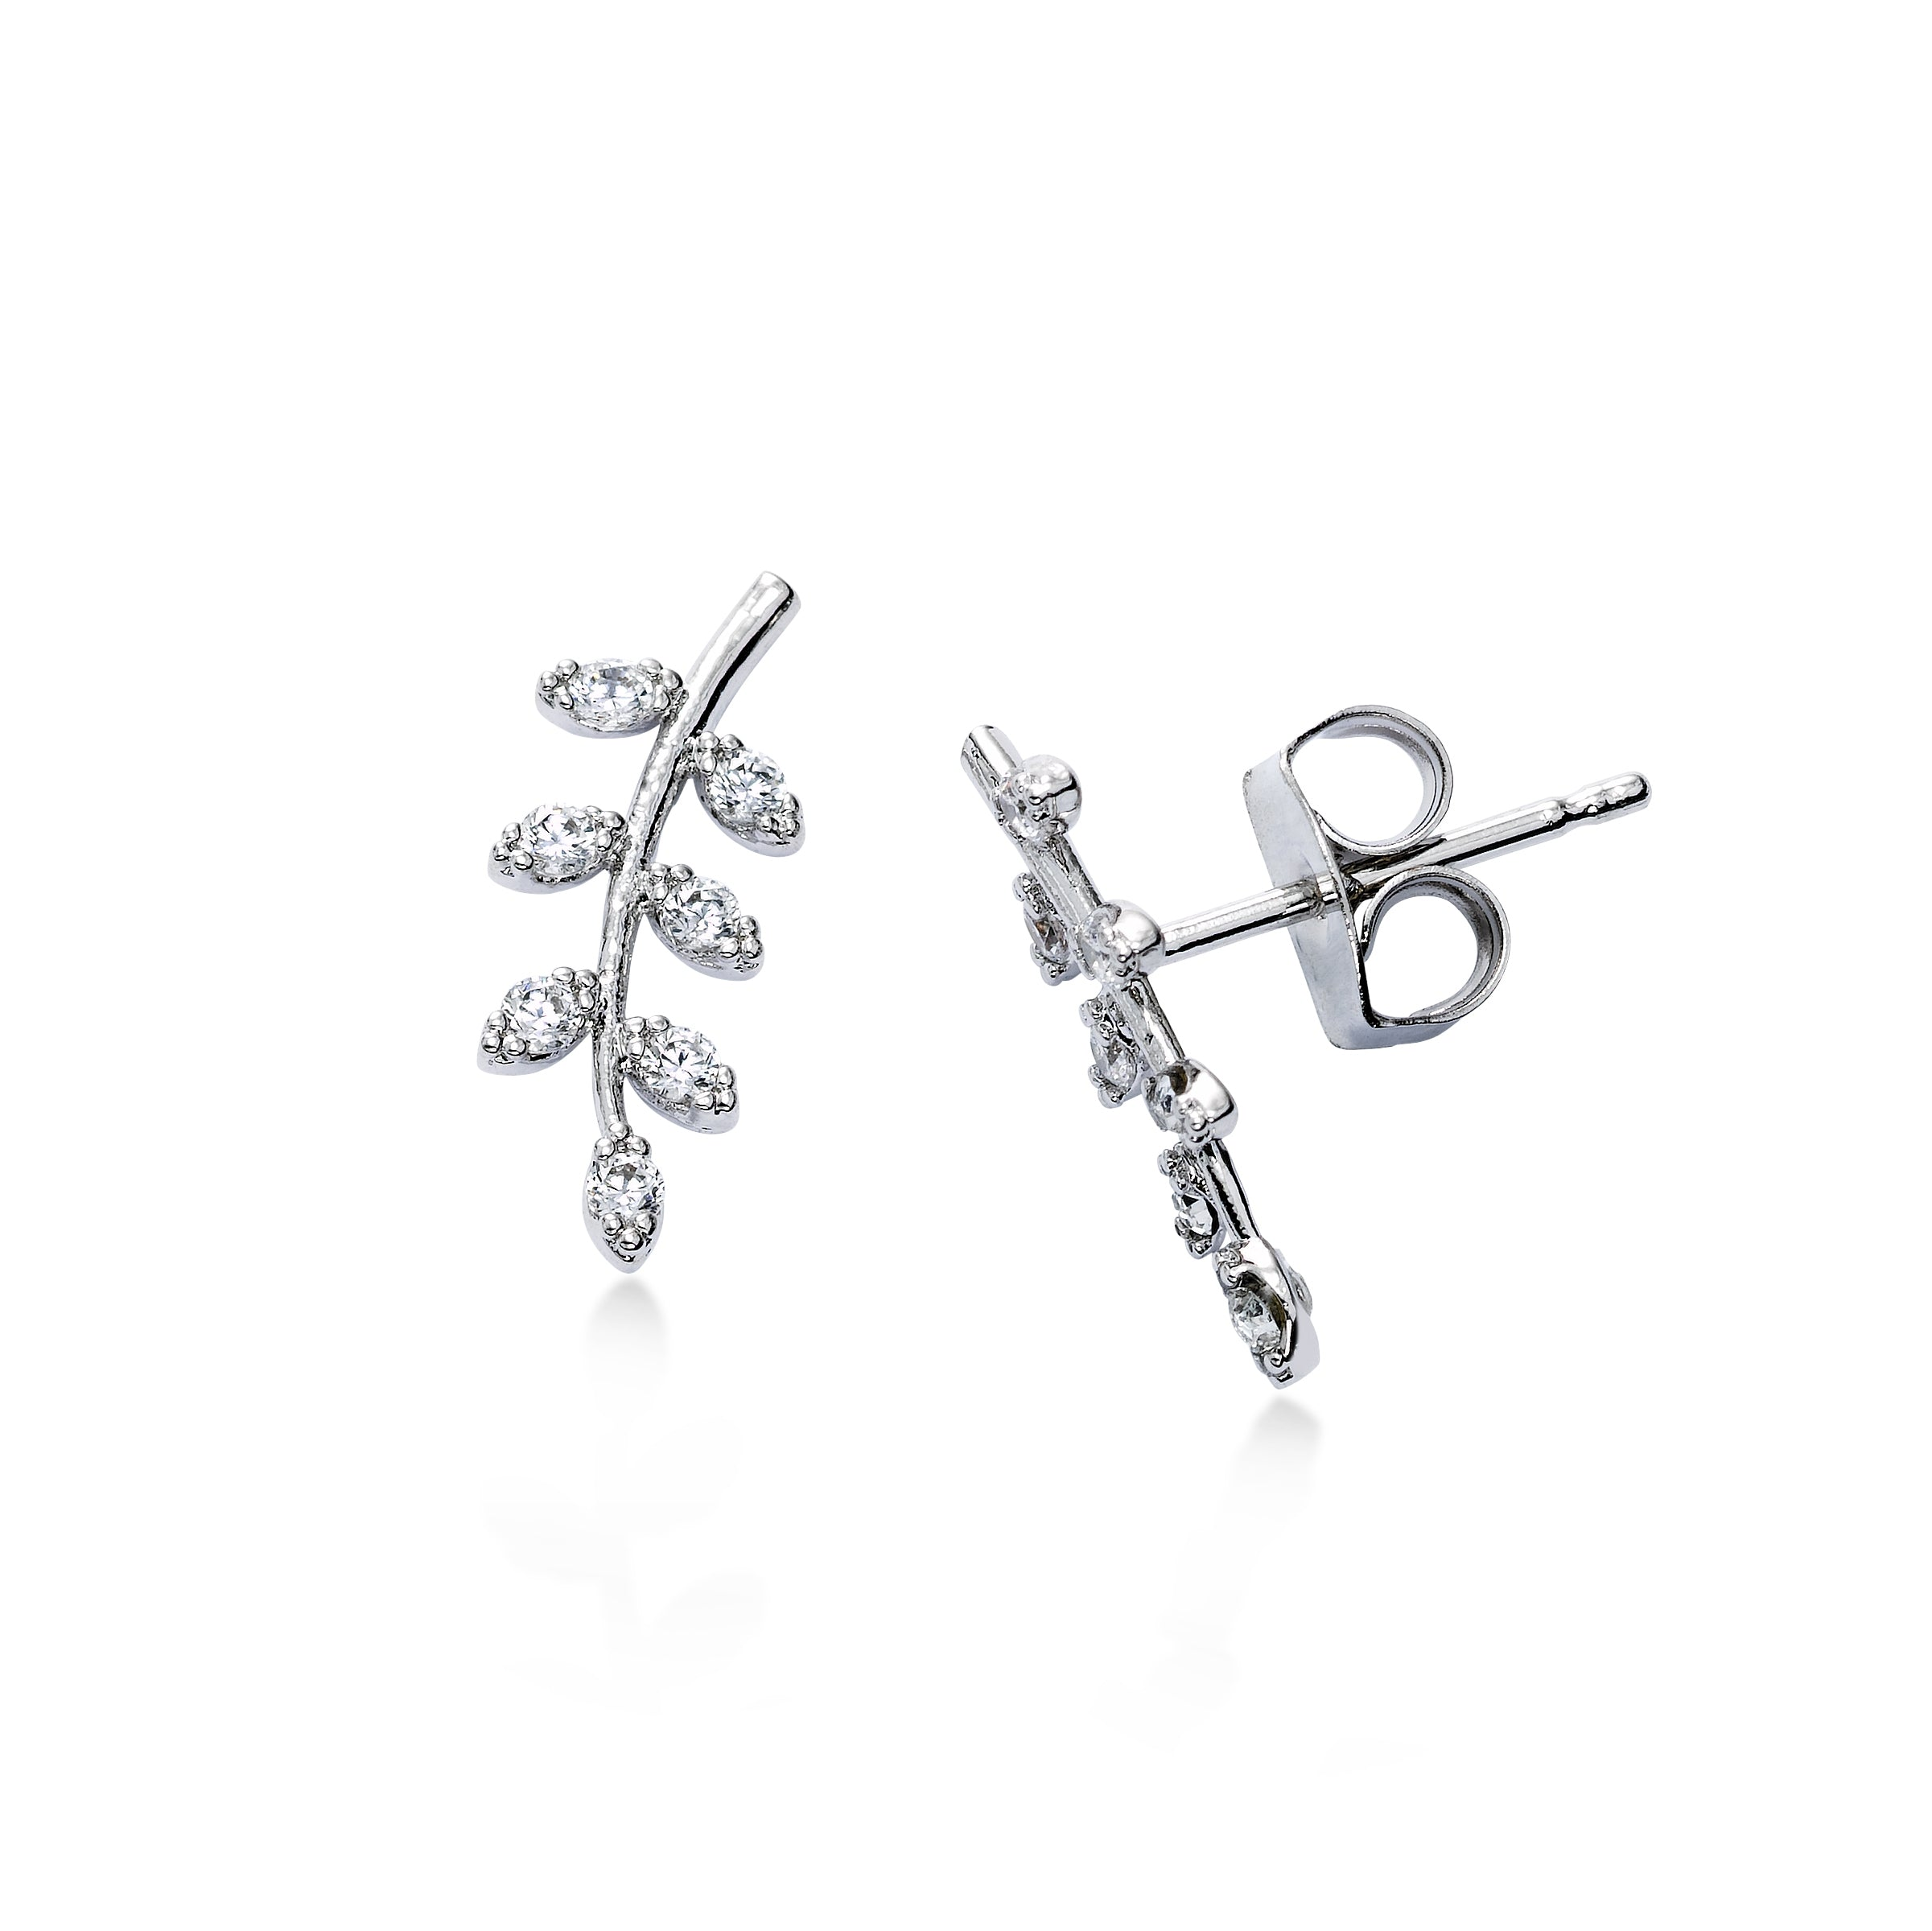 CZ Leaf Stud Earrings, Silver Tone, by Tai Design